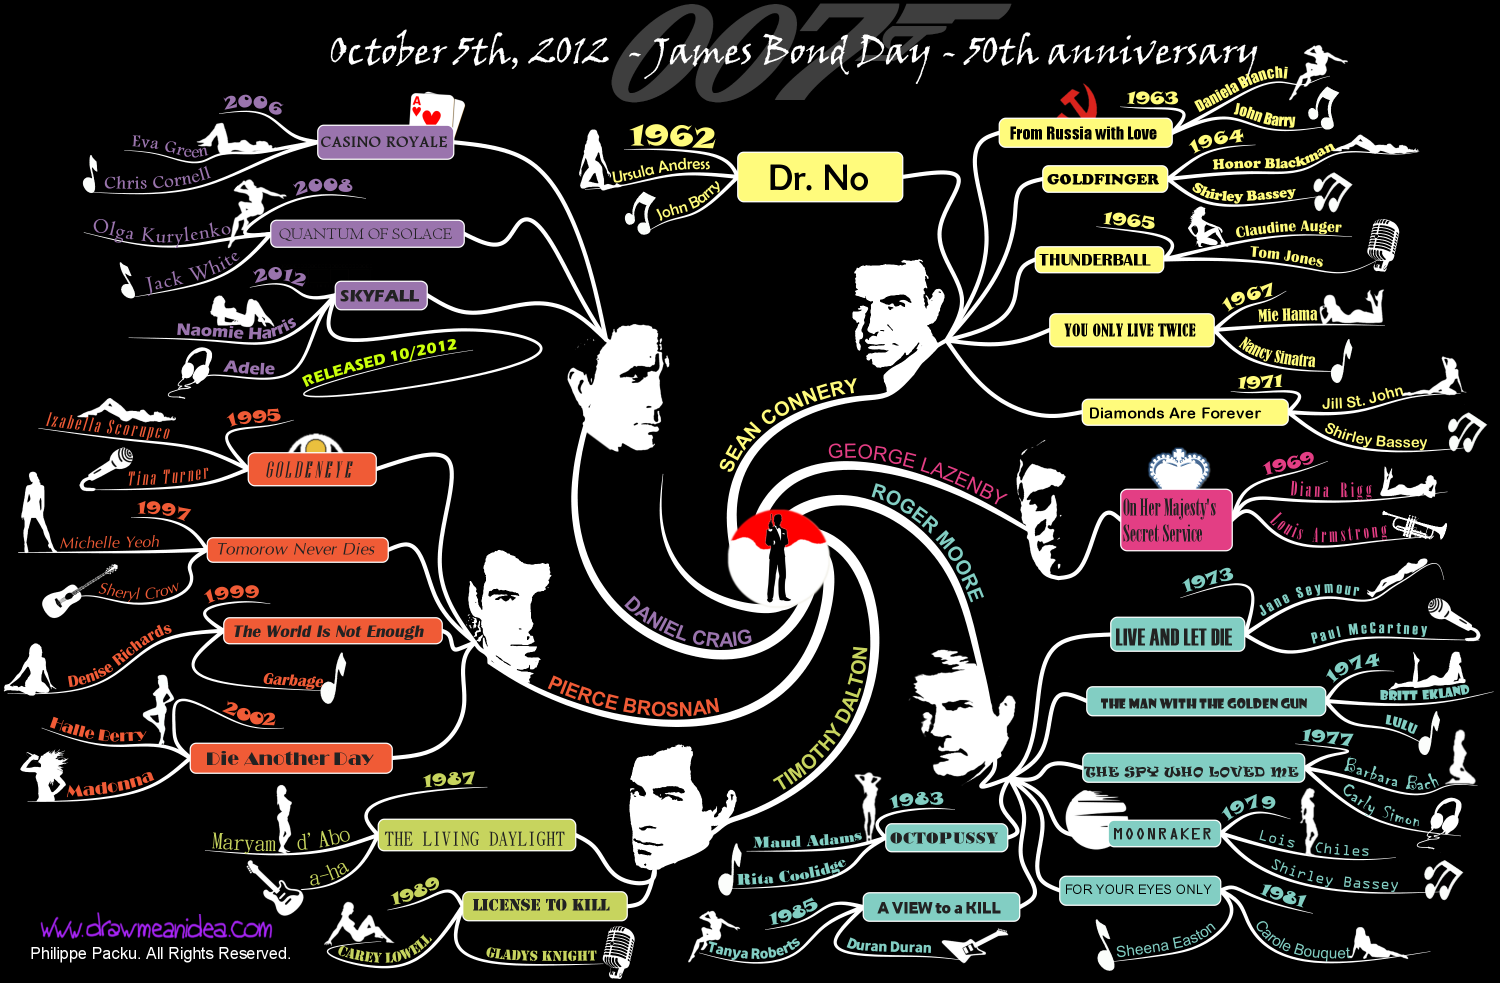 James Bond 50th anniversary mind map Infographic